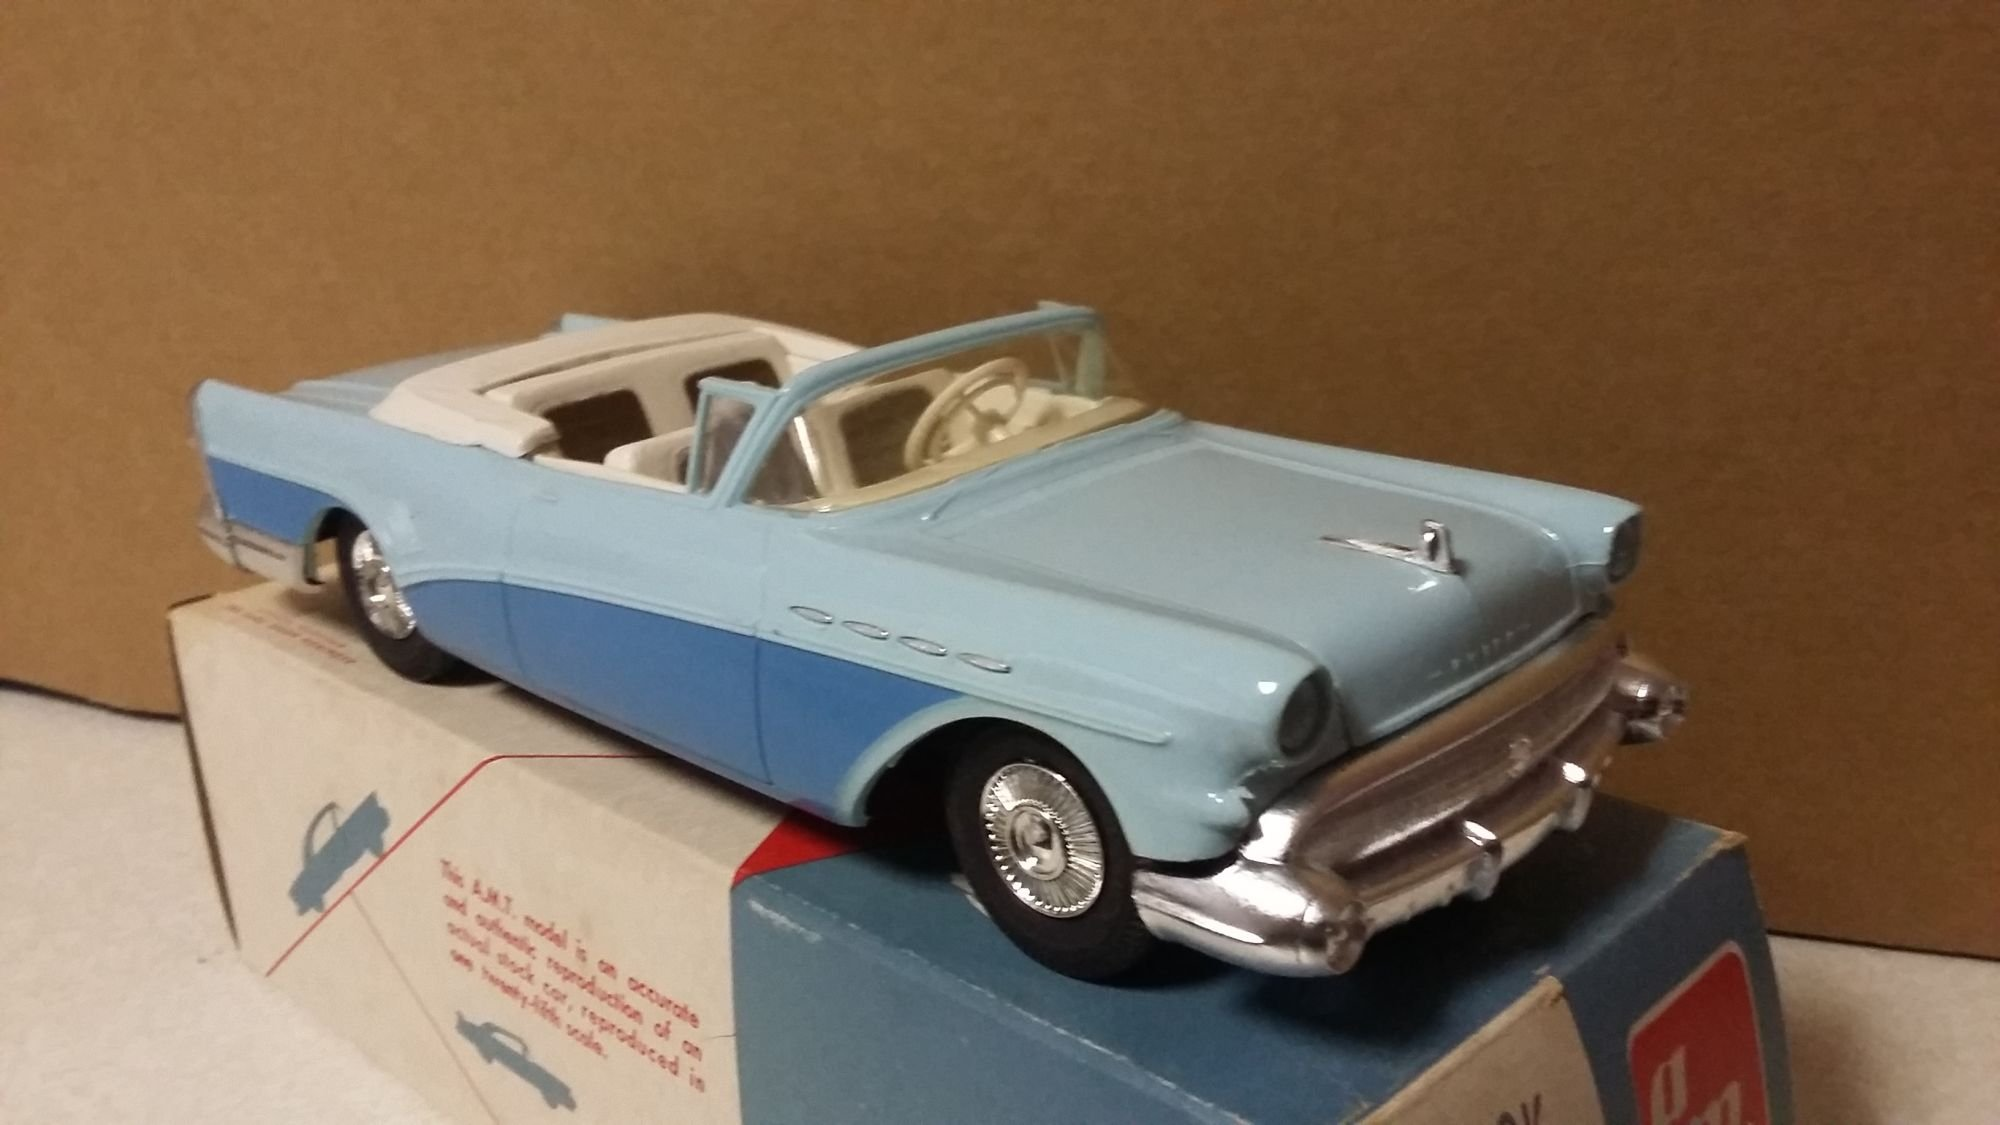 Promos Much More Automobilia Collectibles Toys Power Top Wiring Diagram For 1942 47 Chevrolet Passenger Cars Cabriolet Stock 11261957 Buick Roadmaster Convertible With Free Us Shipping